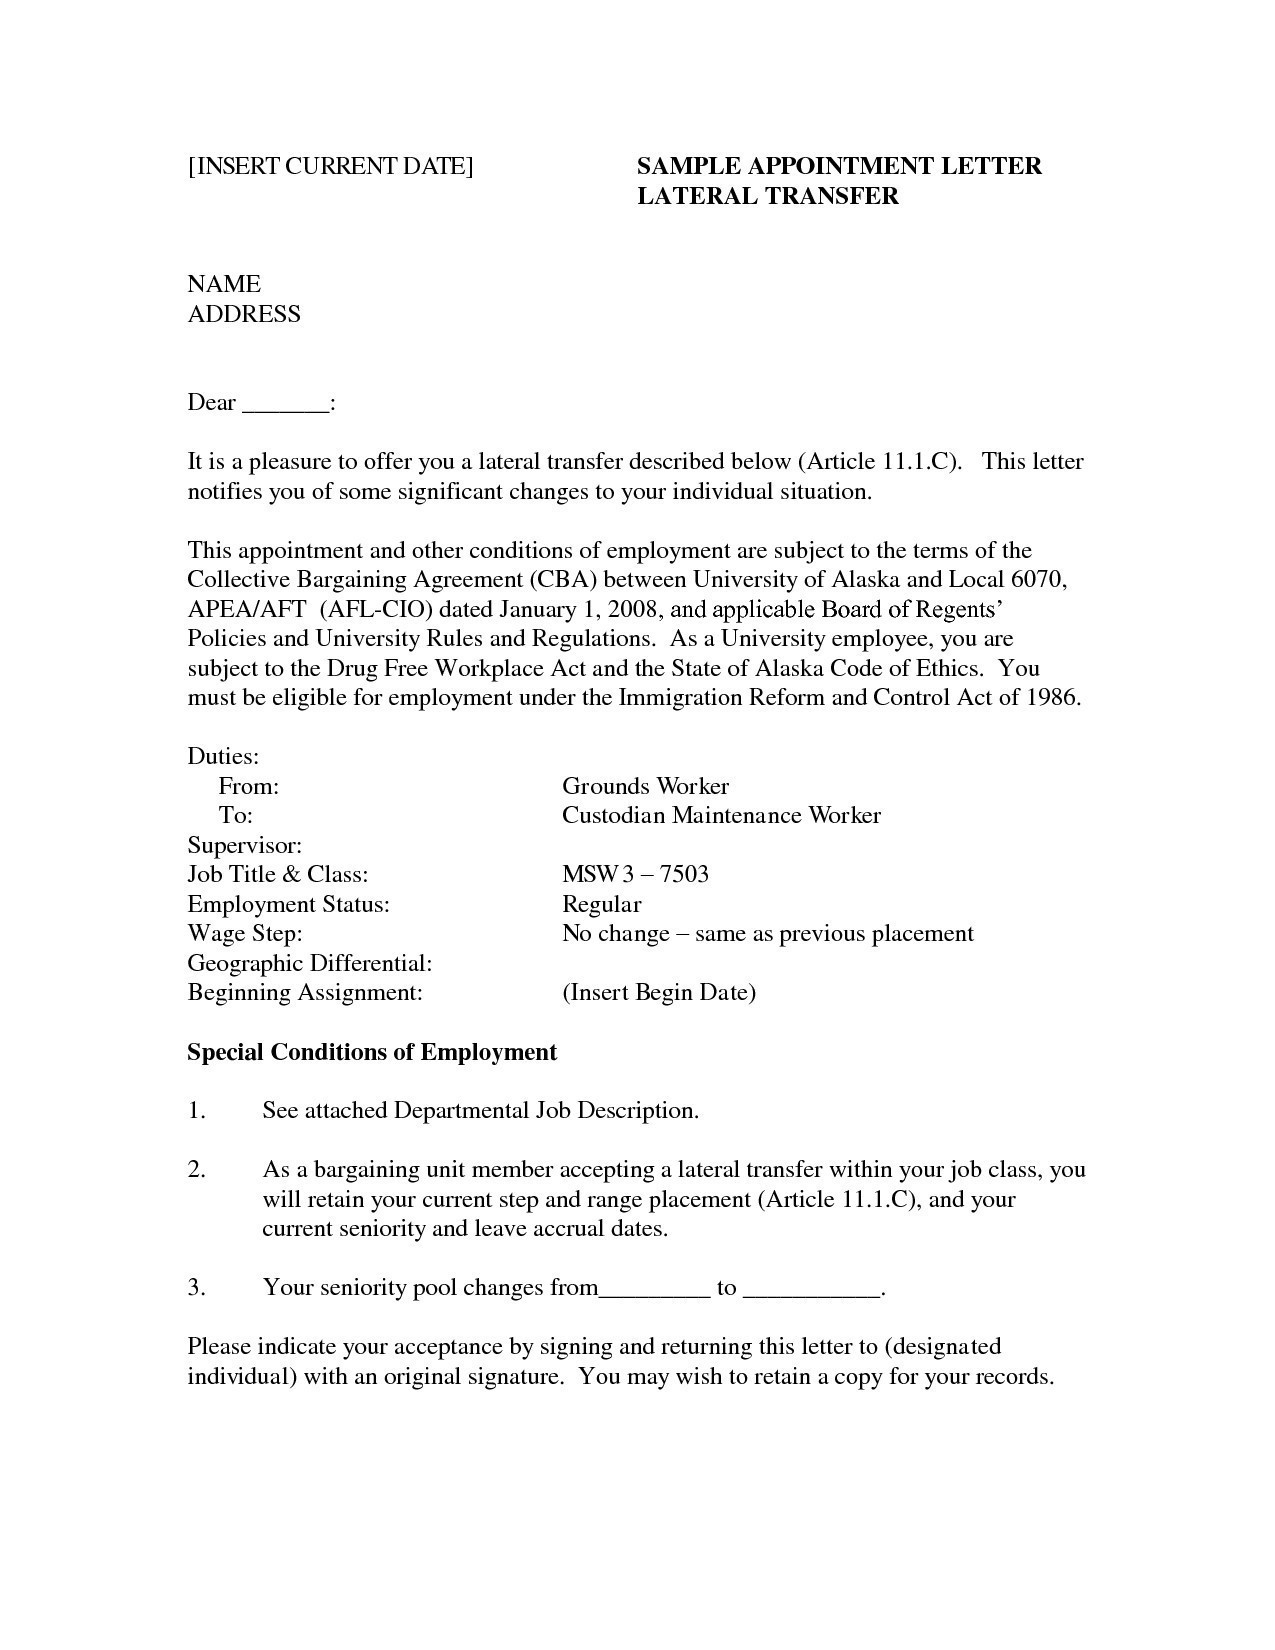 For Sale by Owner Offer Letter Template - Do You Introduce Yourself In A Cover Letter